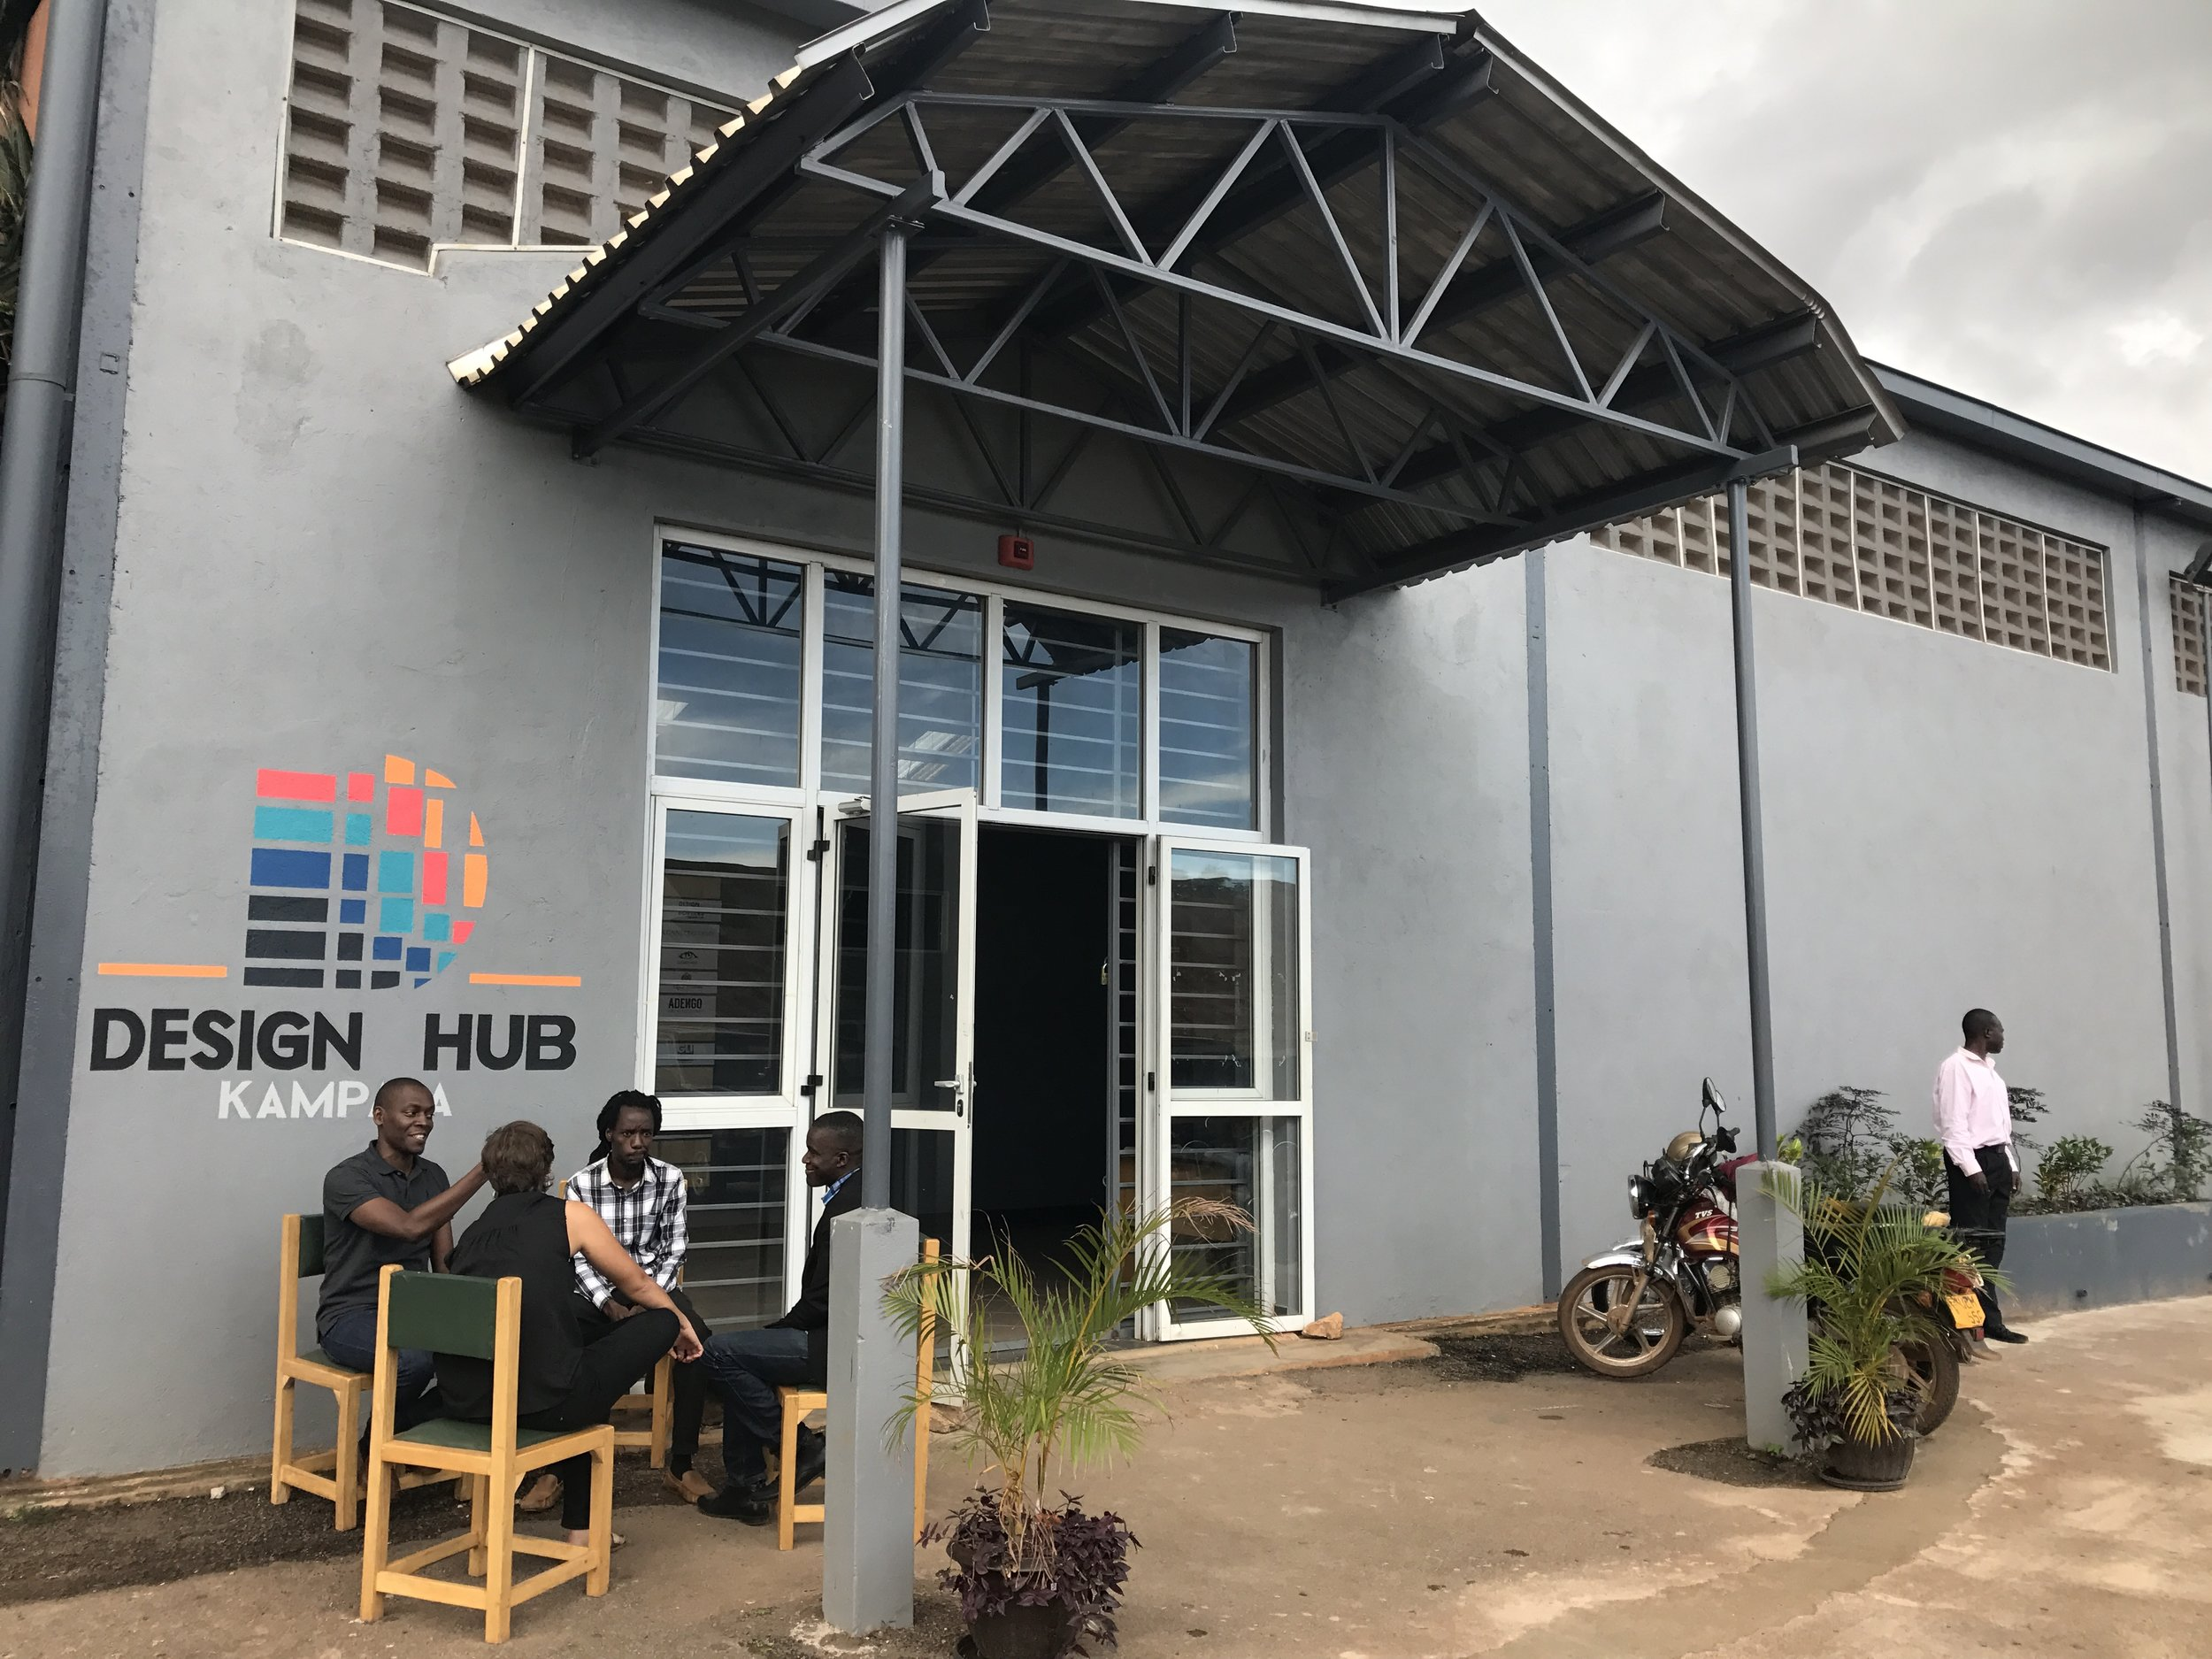 One of the new co-working spaces, Design Hub, I visited in Kampala, Uganda.